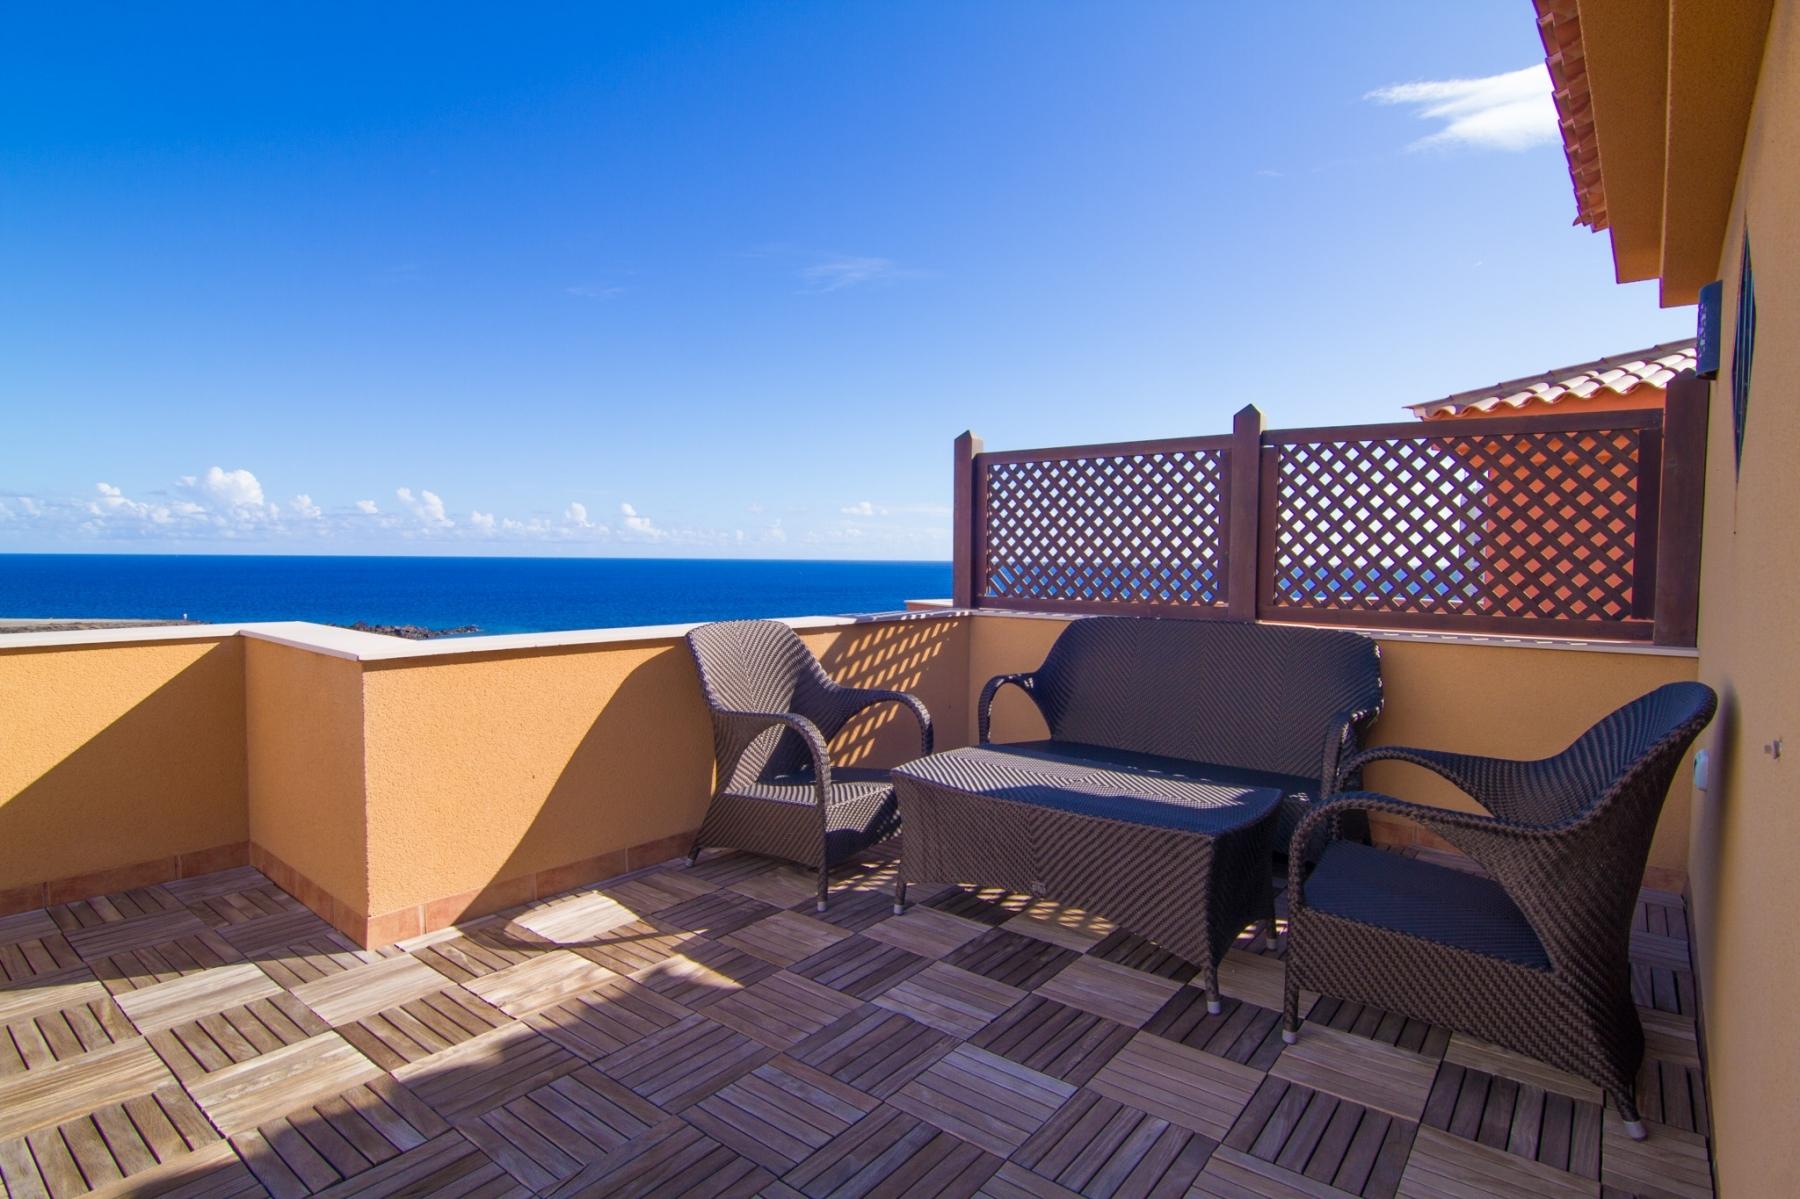 Properties for Sale in Tenerife, Canary Islands, Spain | SylkWayStar Real Estate. Luxury 3 bedrooms townhouse on the first line - San Blas . Image-22453